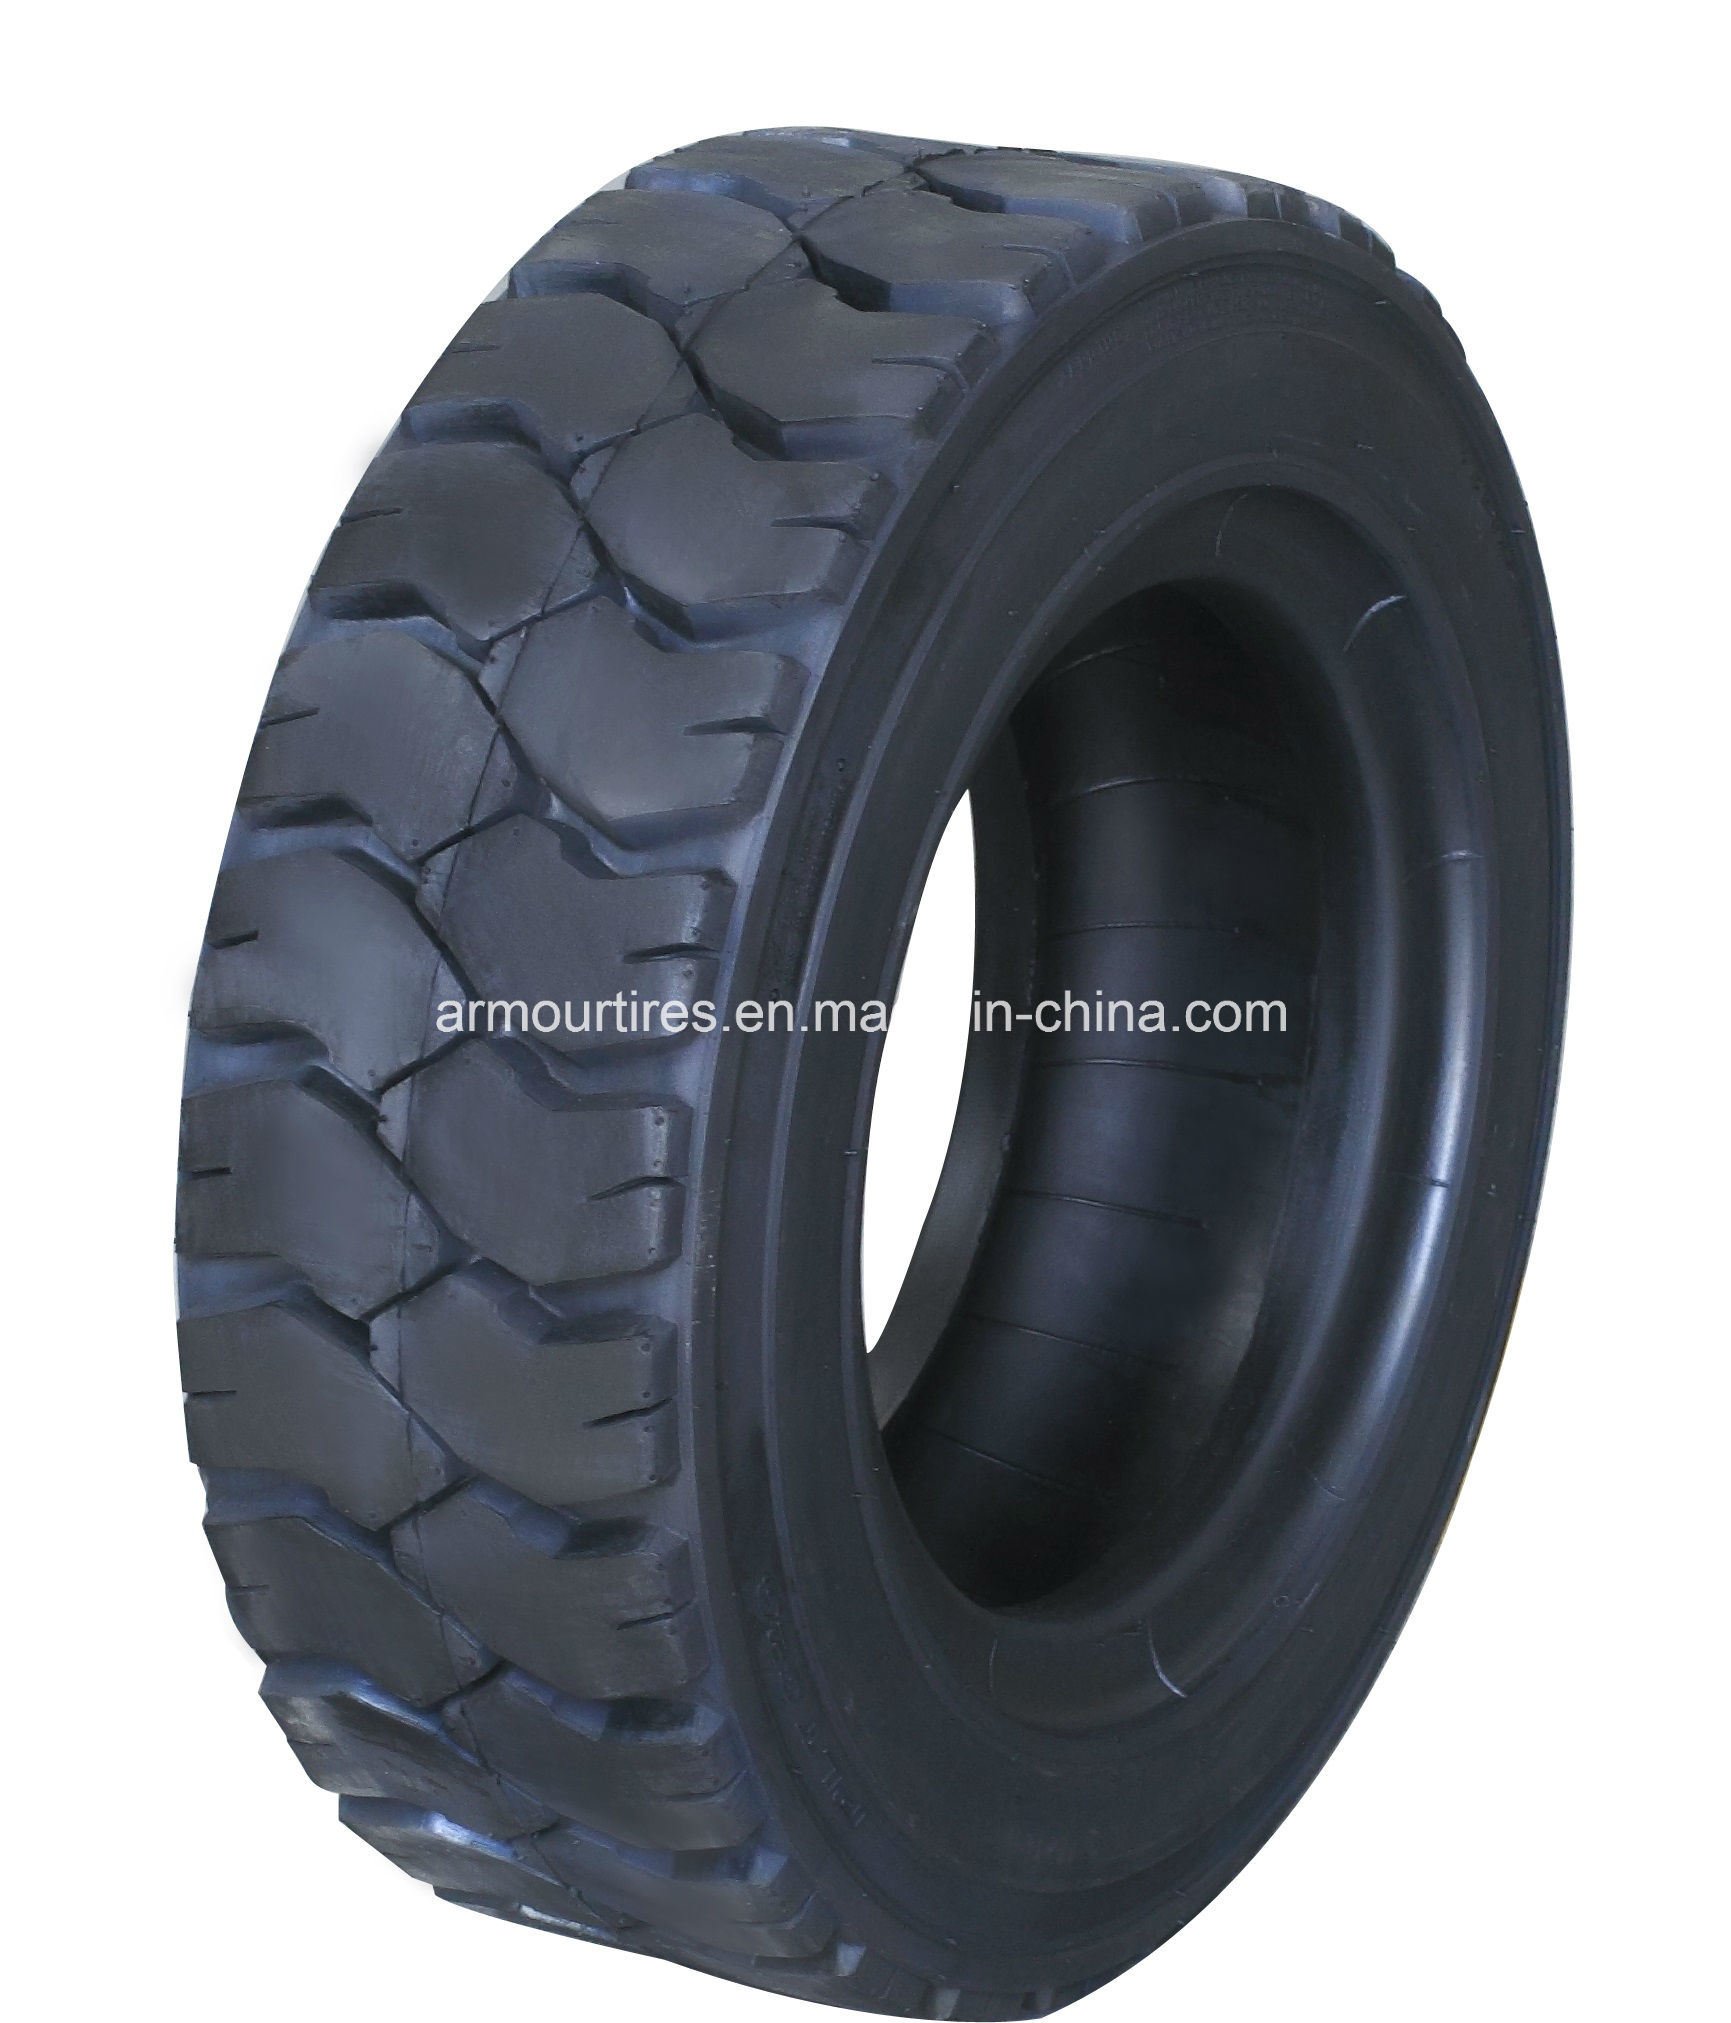 Armour (6.00-9, 6.50-10, 7.00-12, 28*9-15, 8.25-15 PLT328) Forklift Tire/Industrial Tire